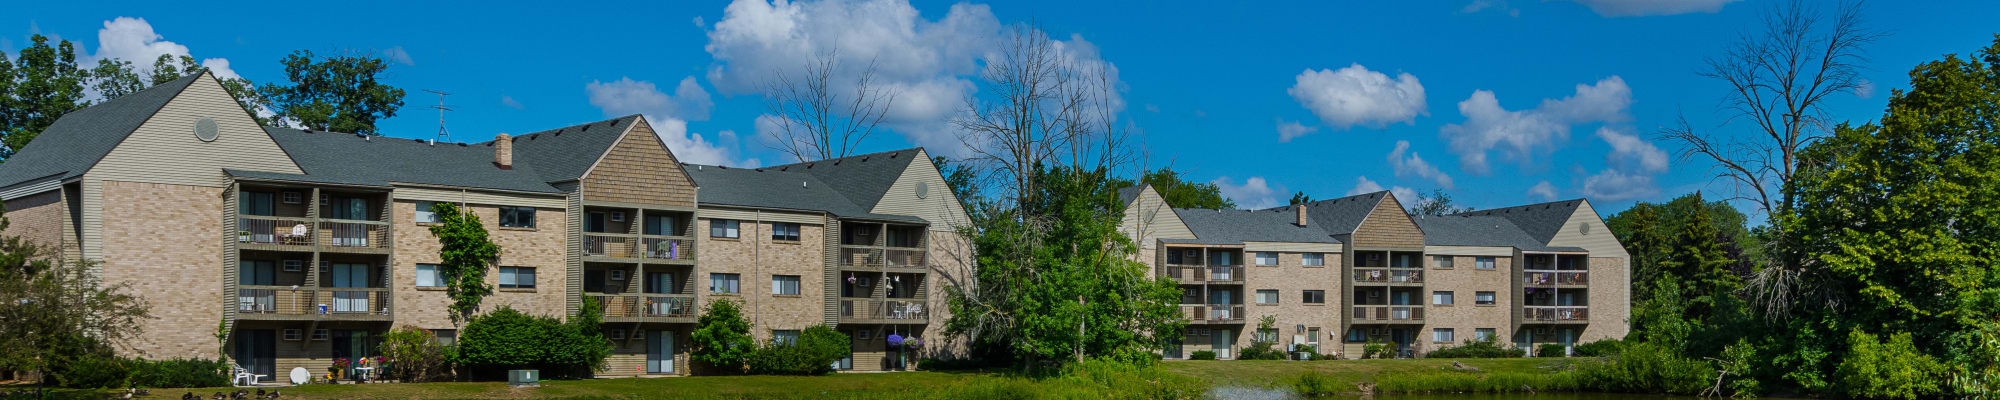 Reviews at Kellogg Cove Apartments in Kentwood, Michigan